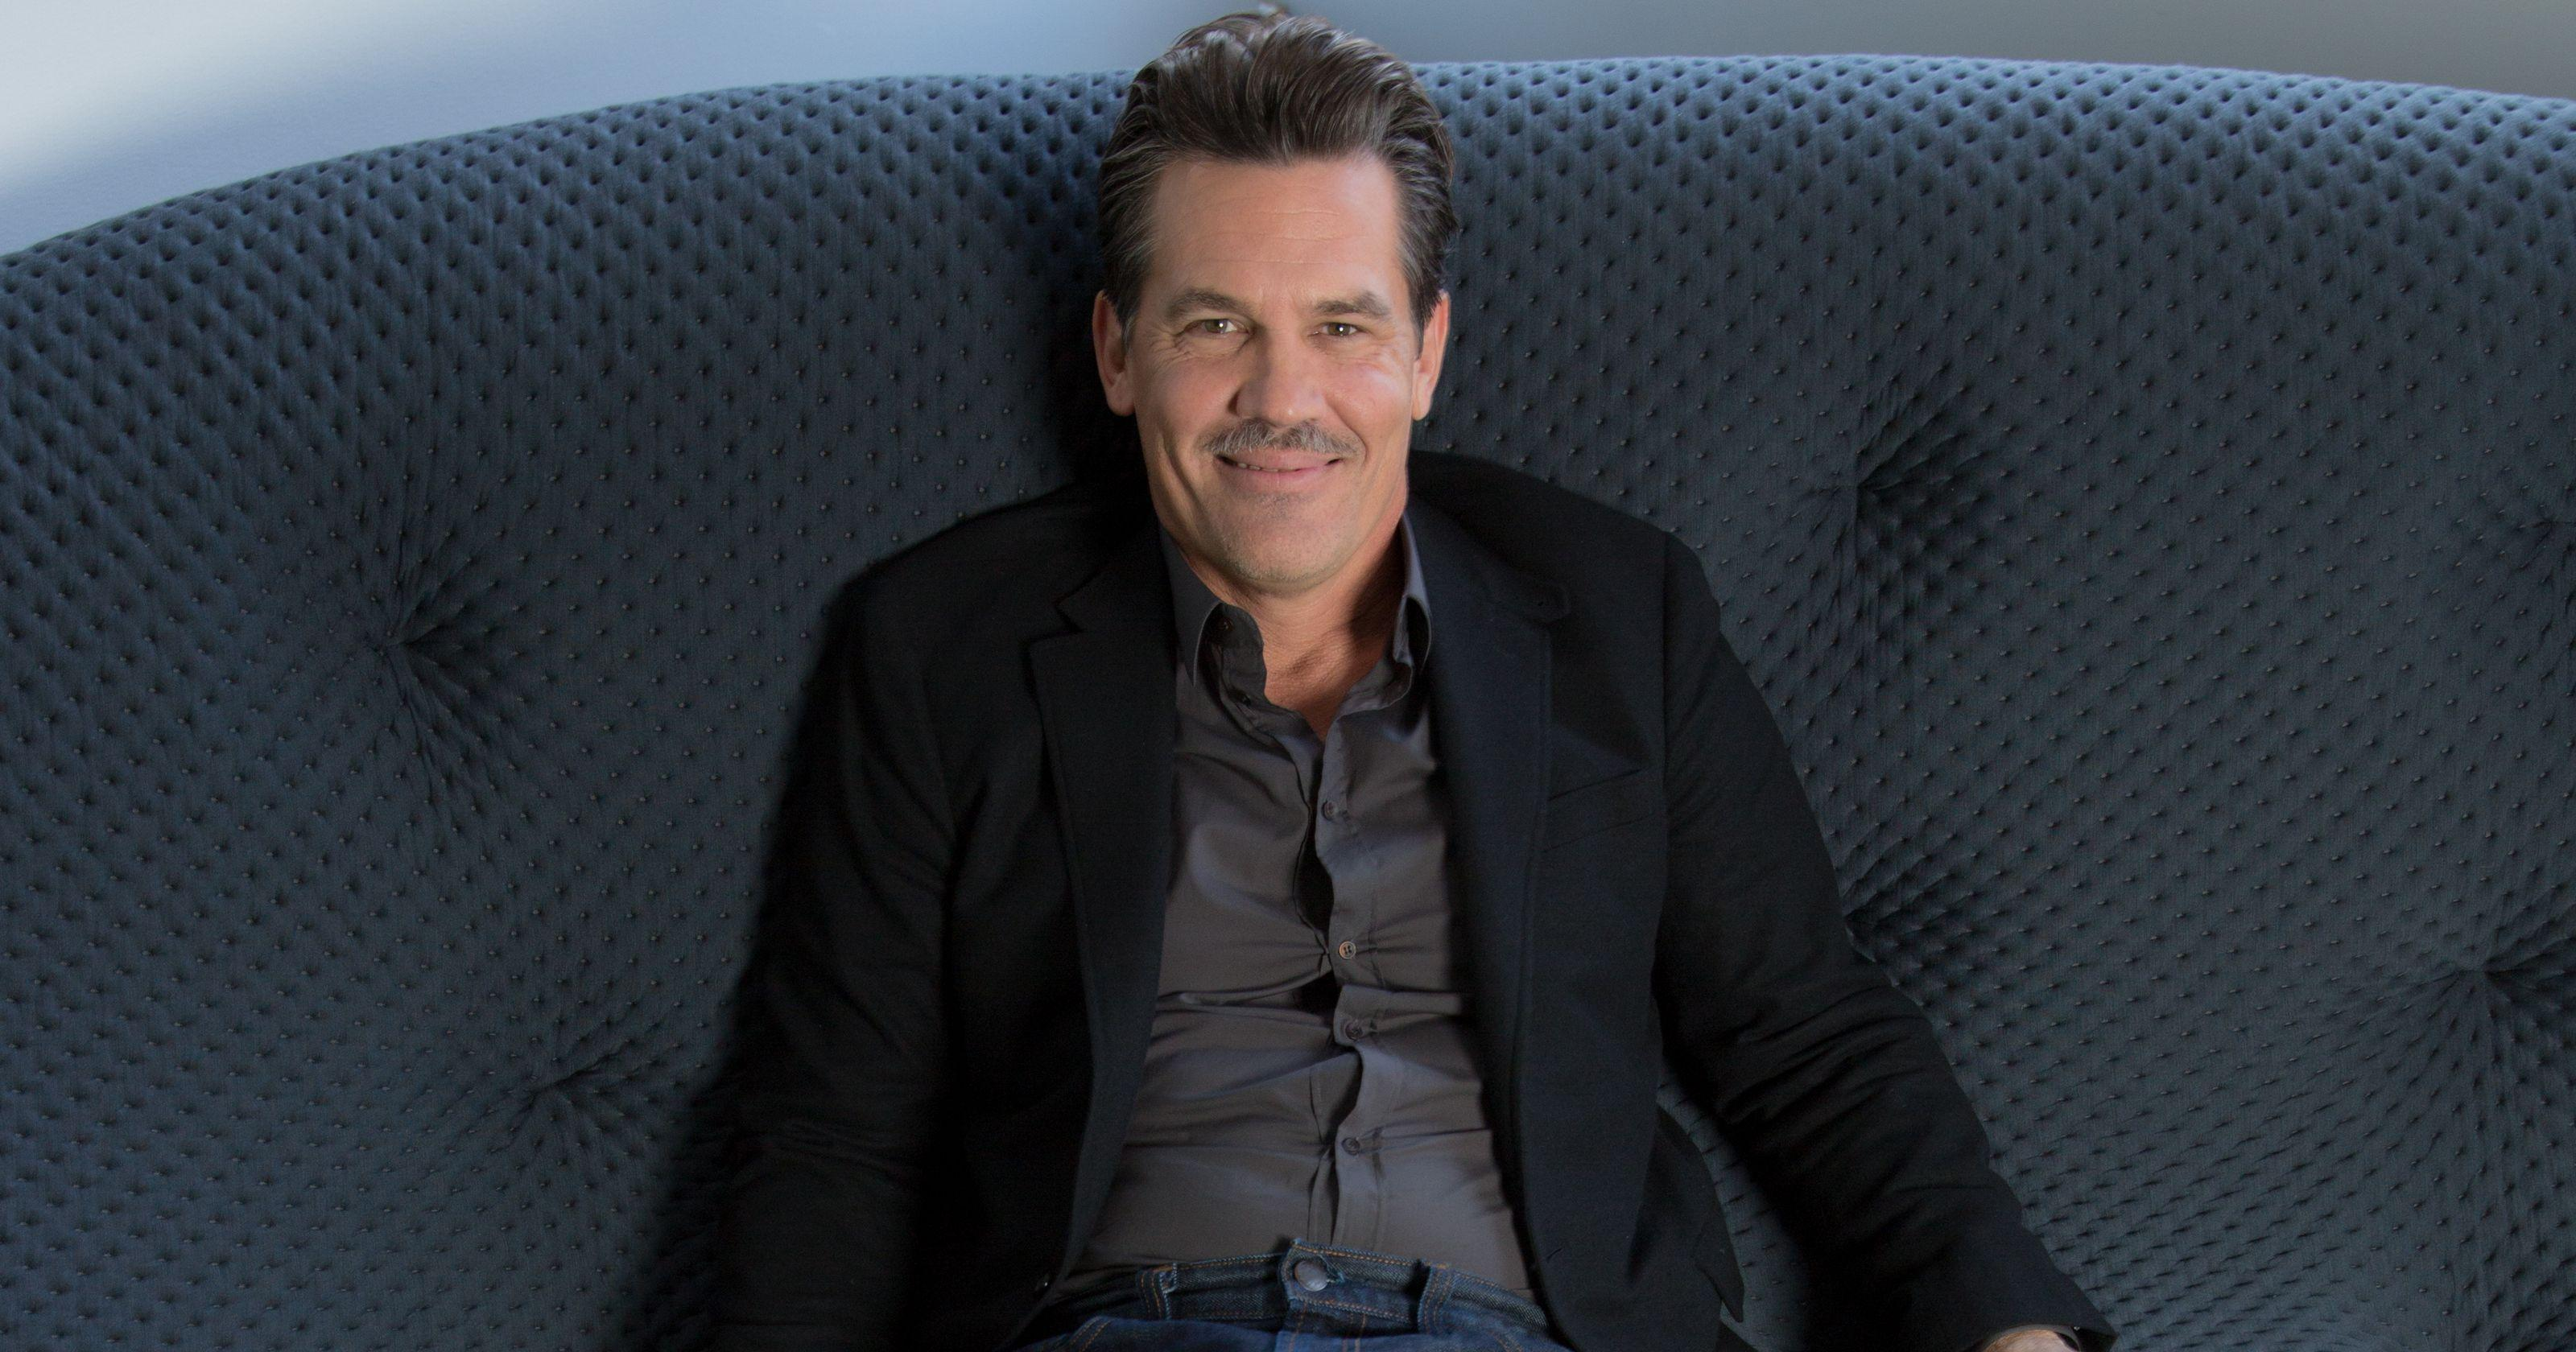 Josh Brolin Wallpapers Images Photos Pictures Backgrounds